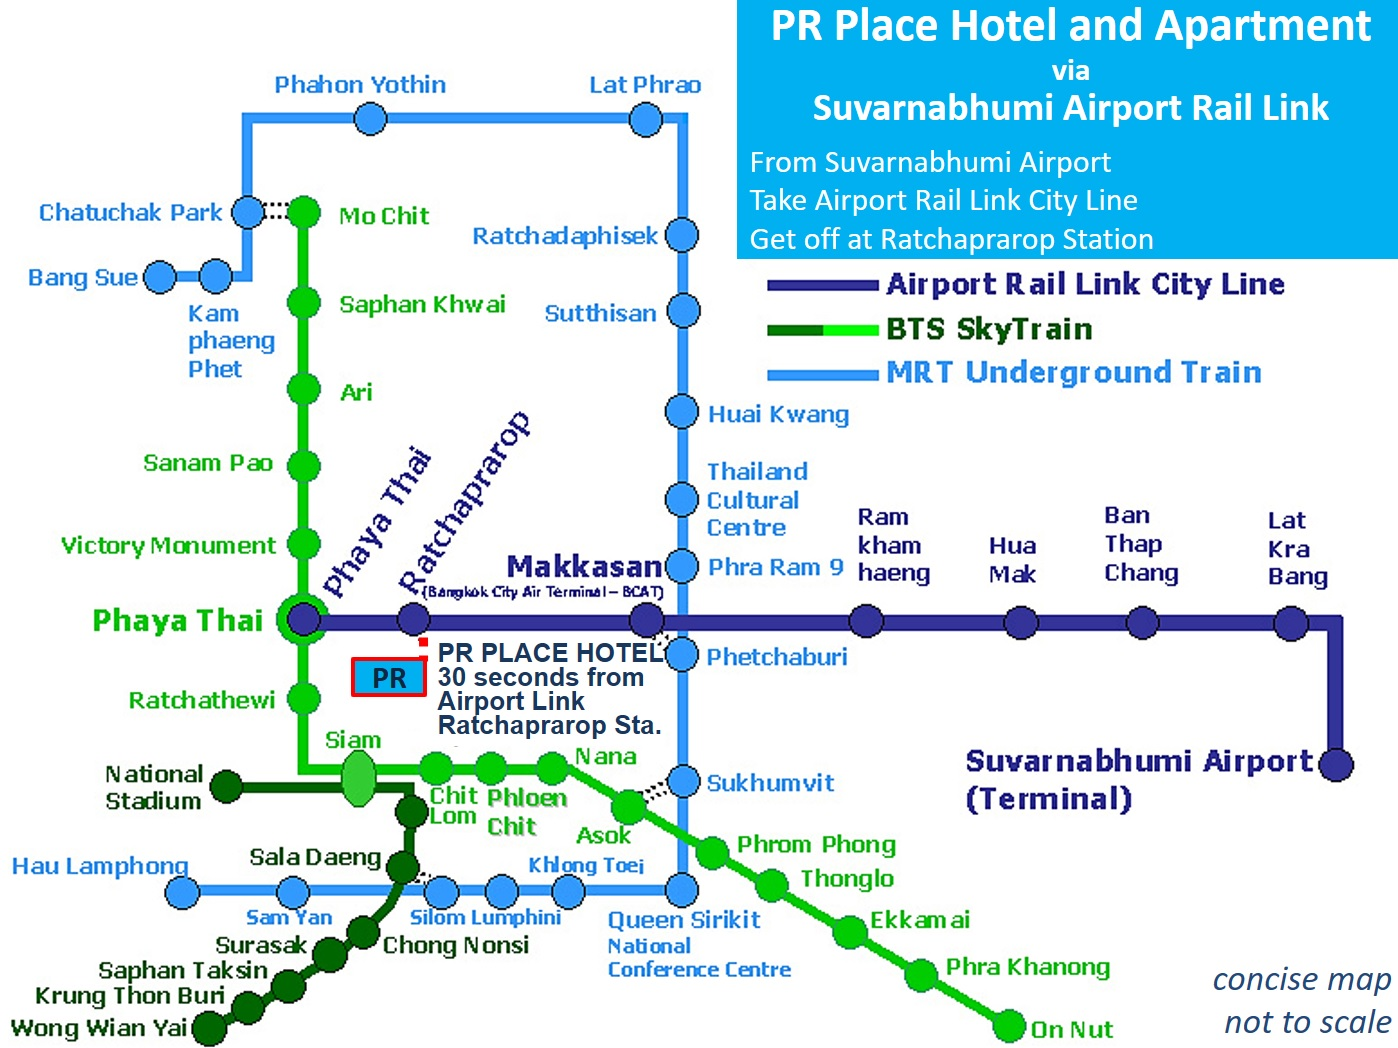 airport rail link map Location Pr Place Hotel And Apartment airport rail link map